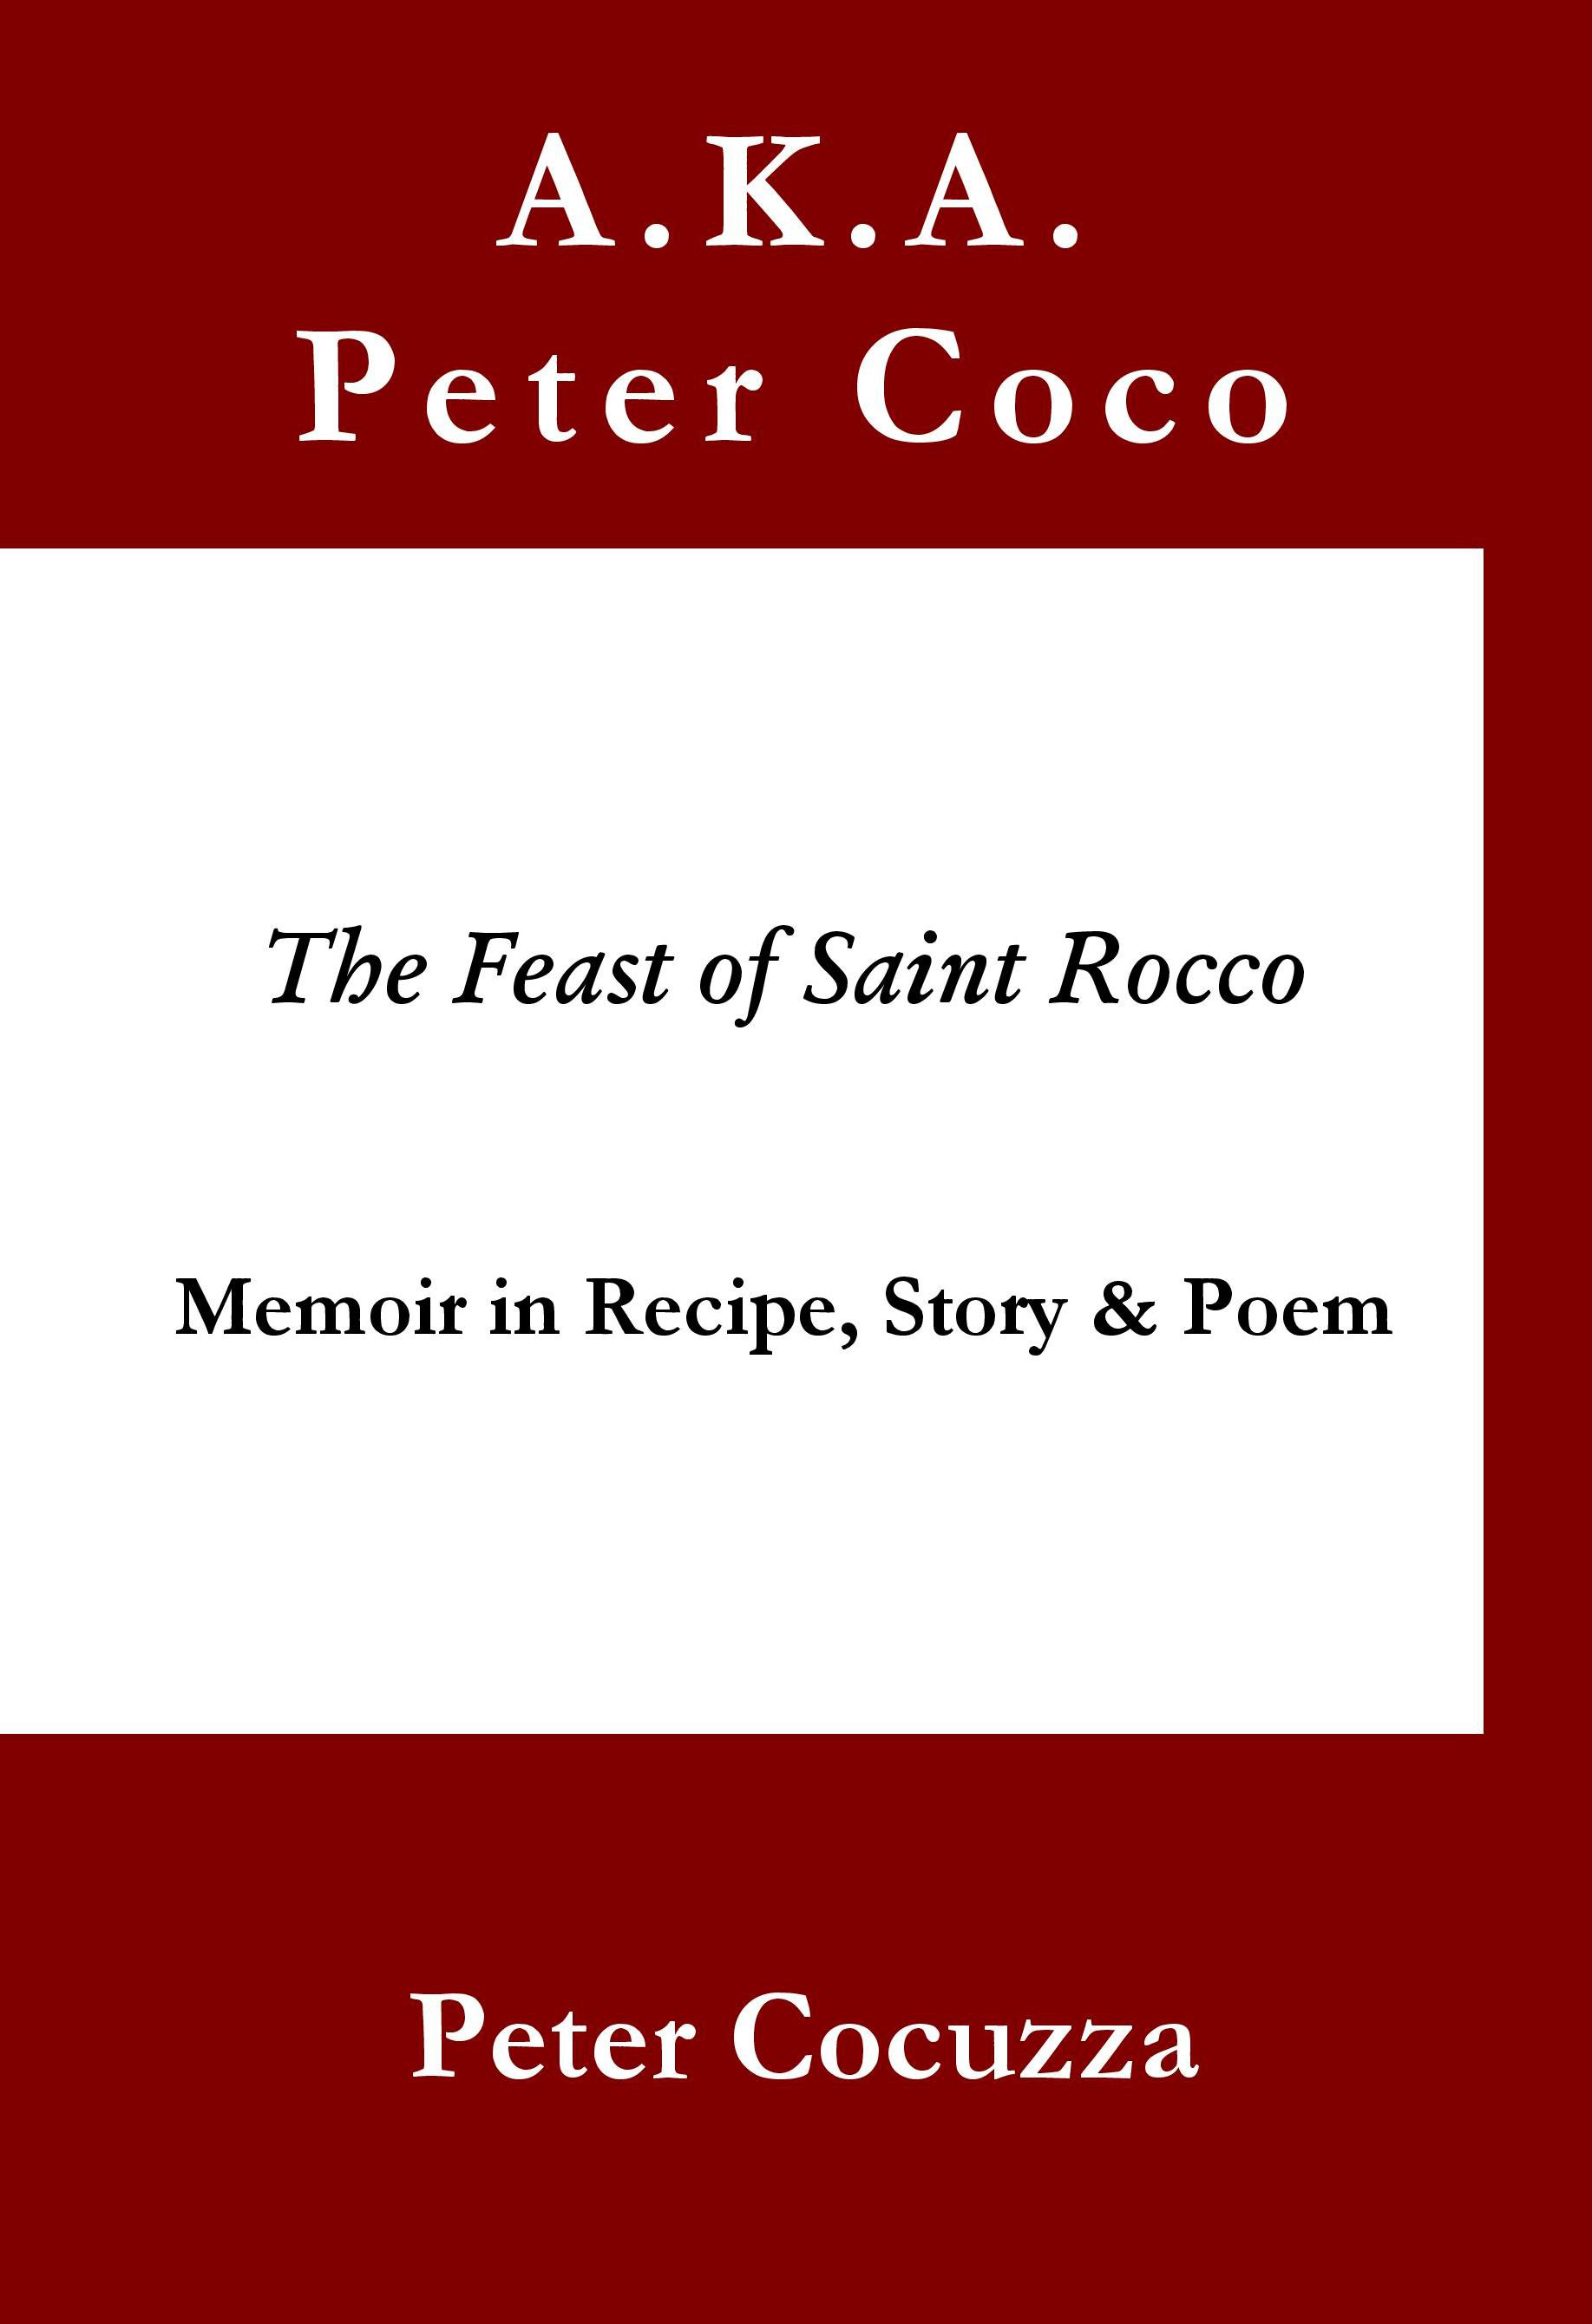 The Feast of Saint Rocco